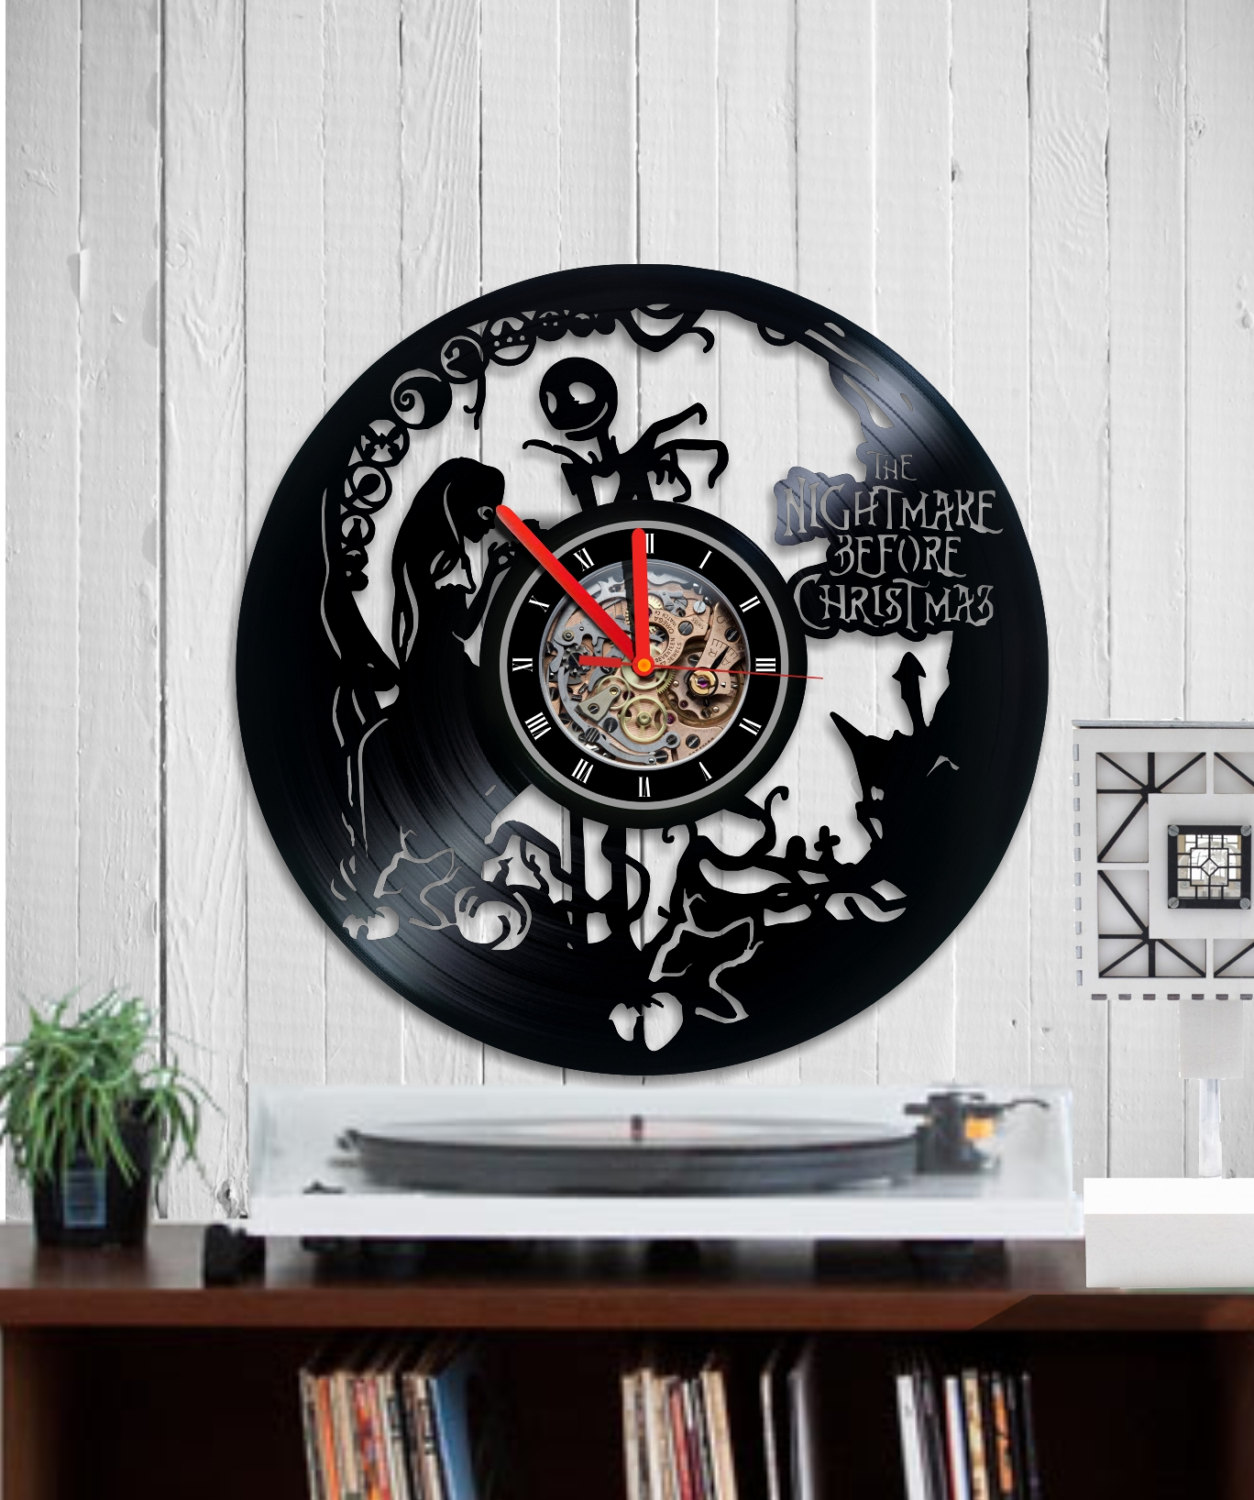 vinyl clock nightmare3